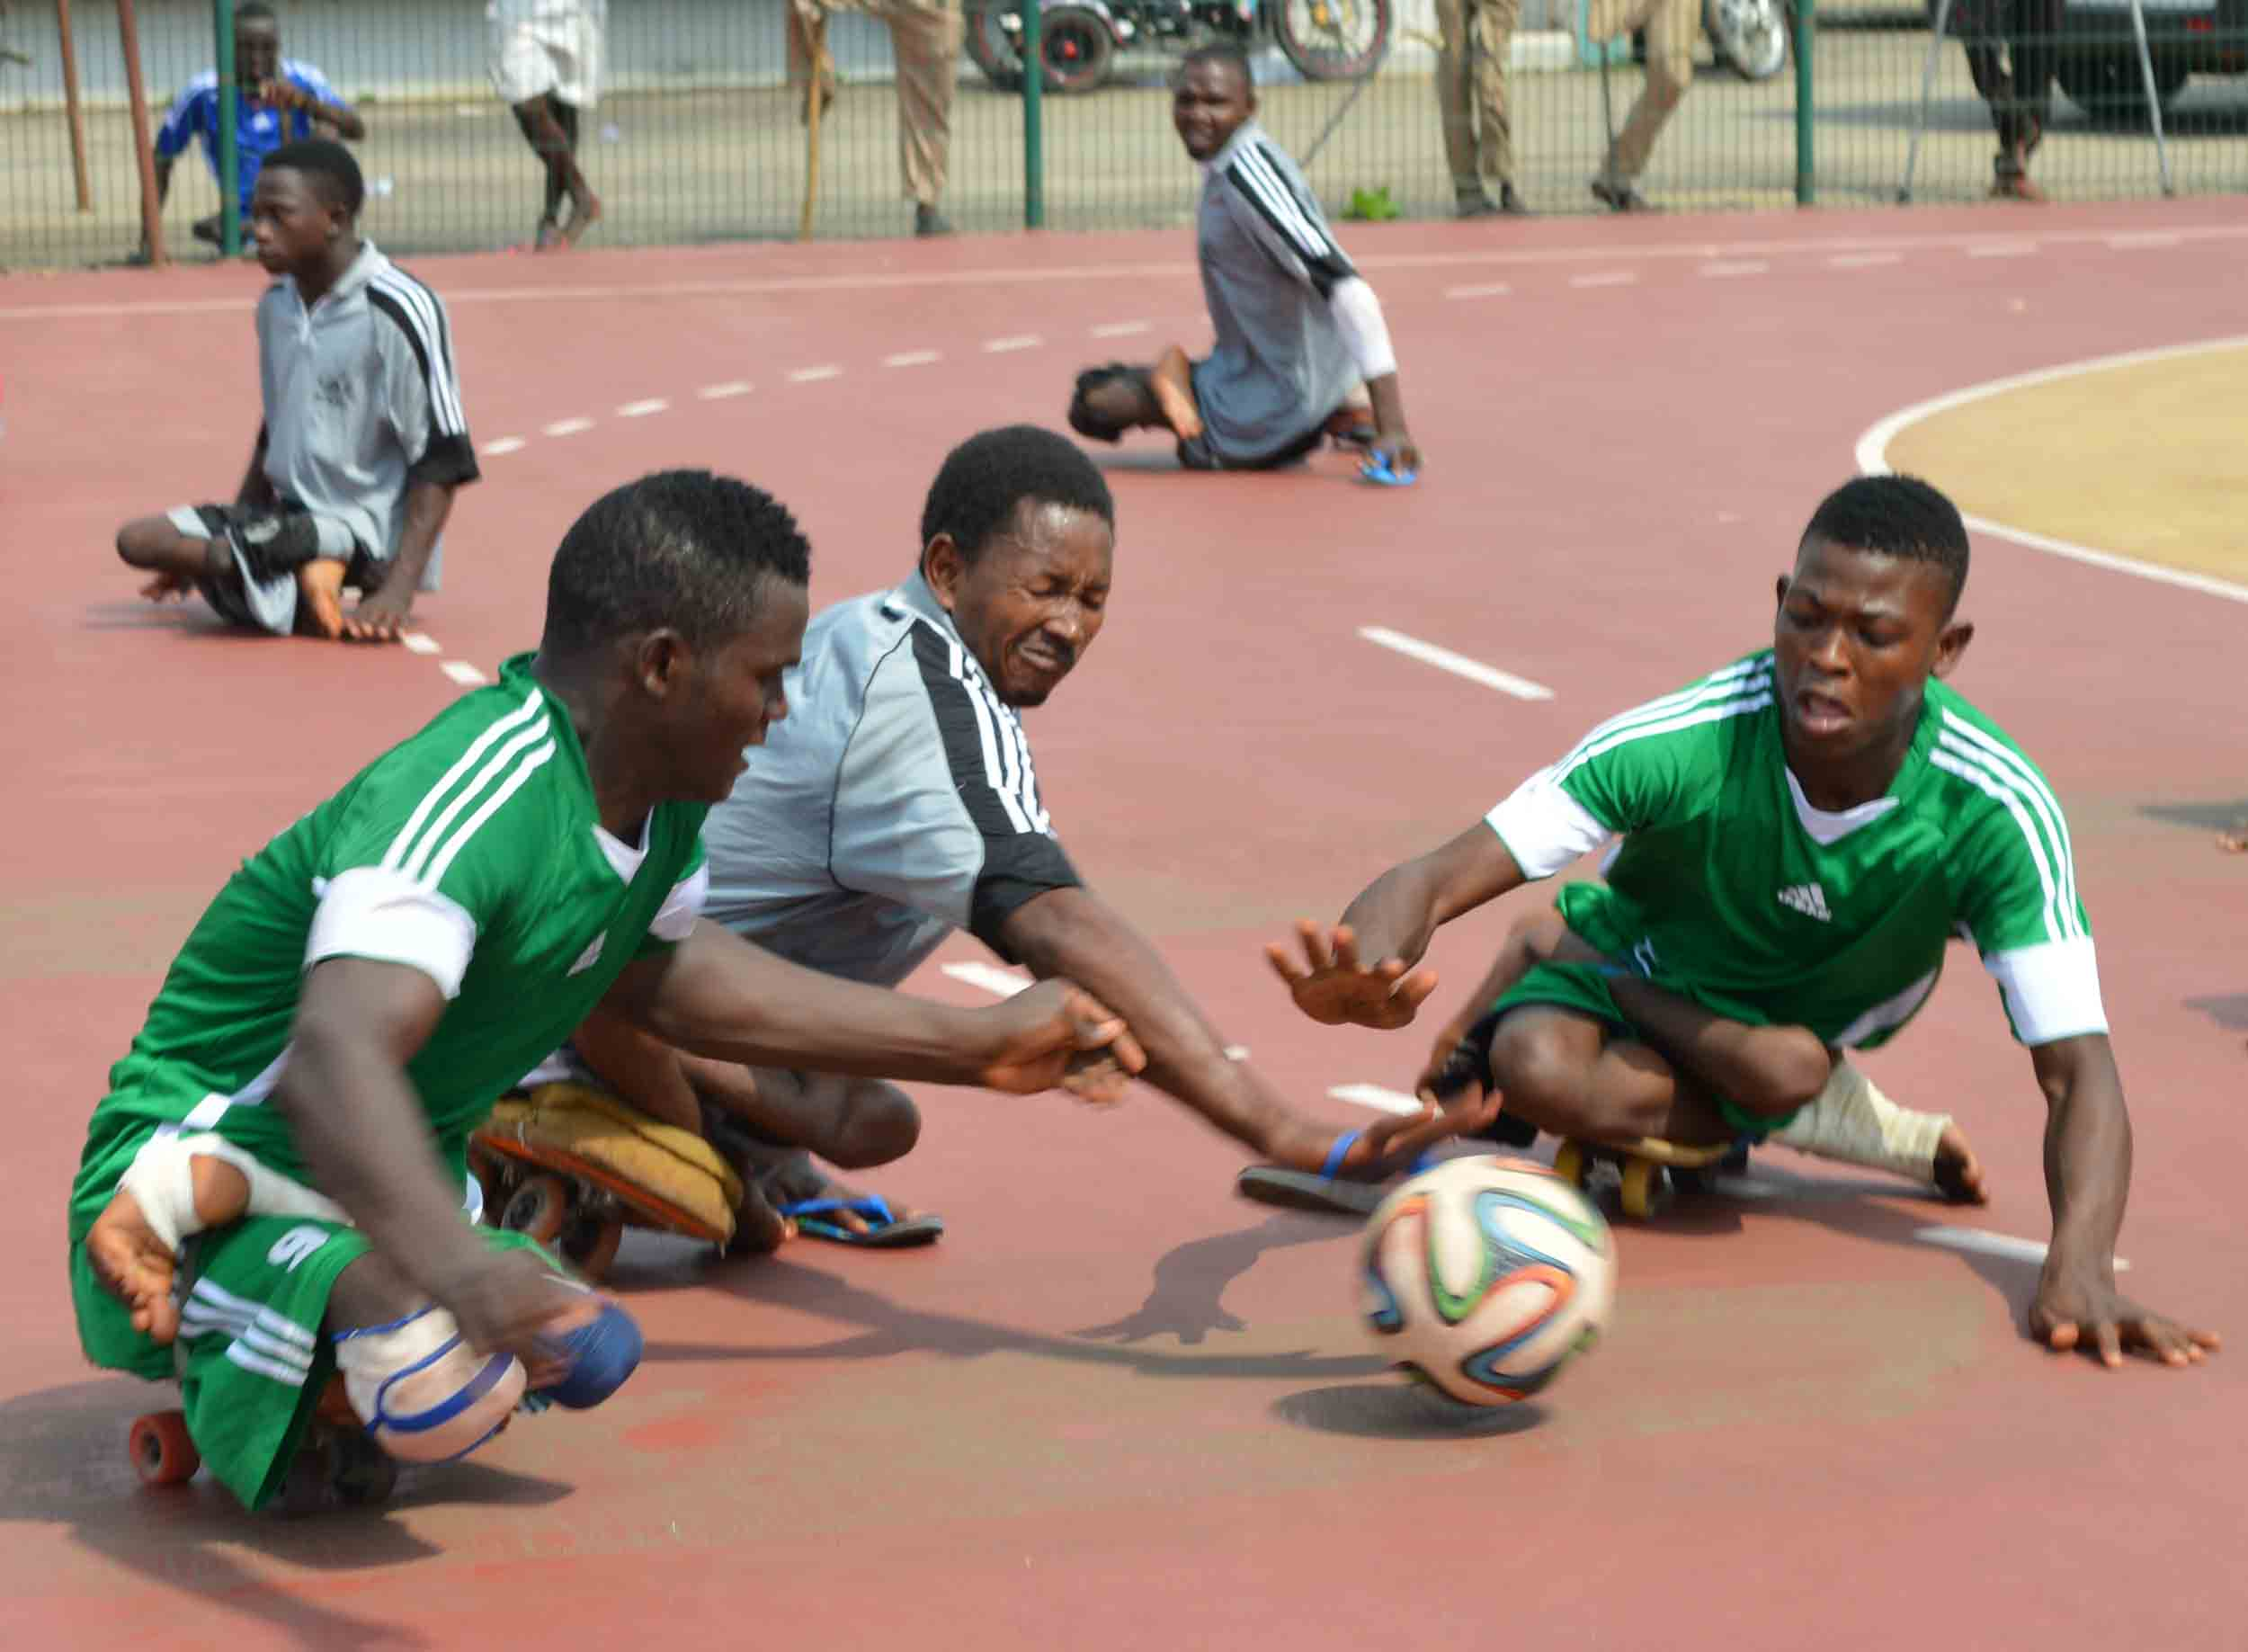 NATIONAL PARA SOCCER TOURNAMENT - Para-soccer: I was so scared meeting Nasarawa in semi-final, Kano coach says